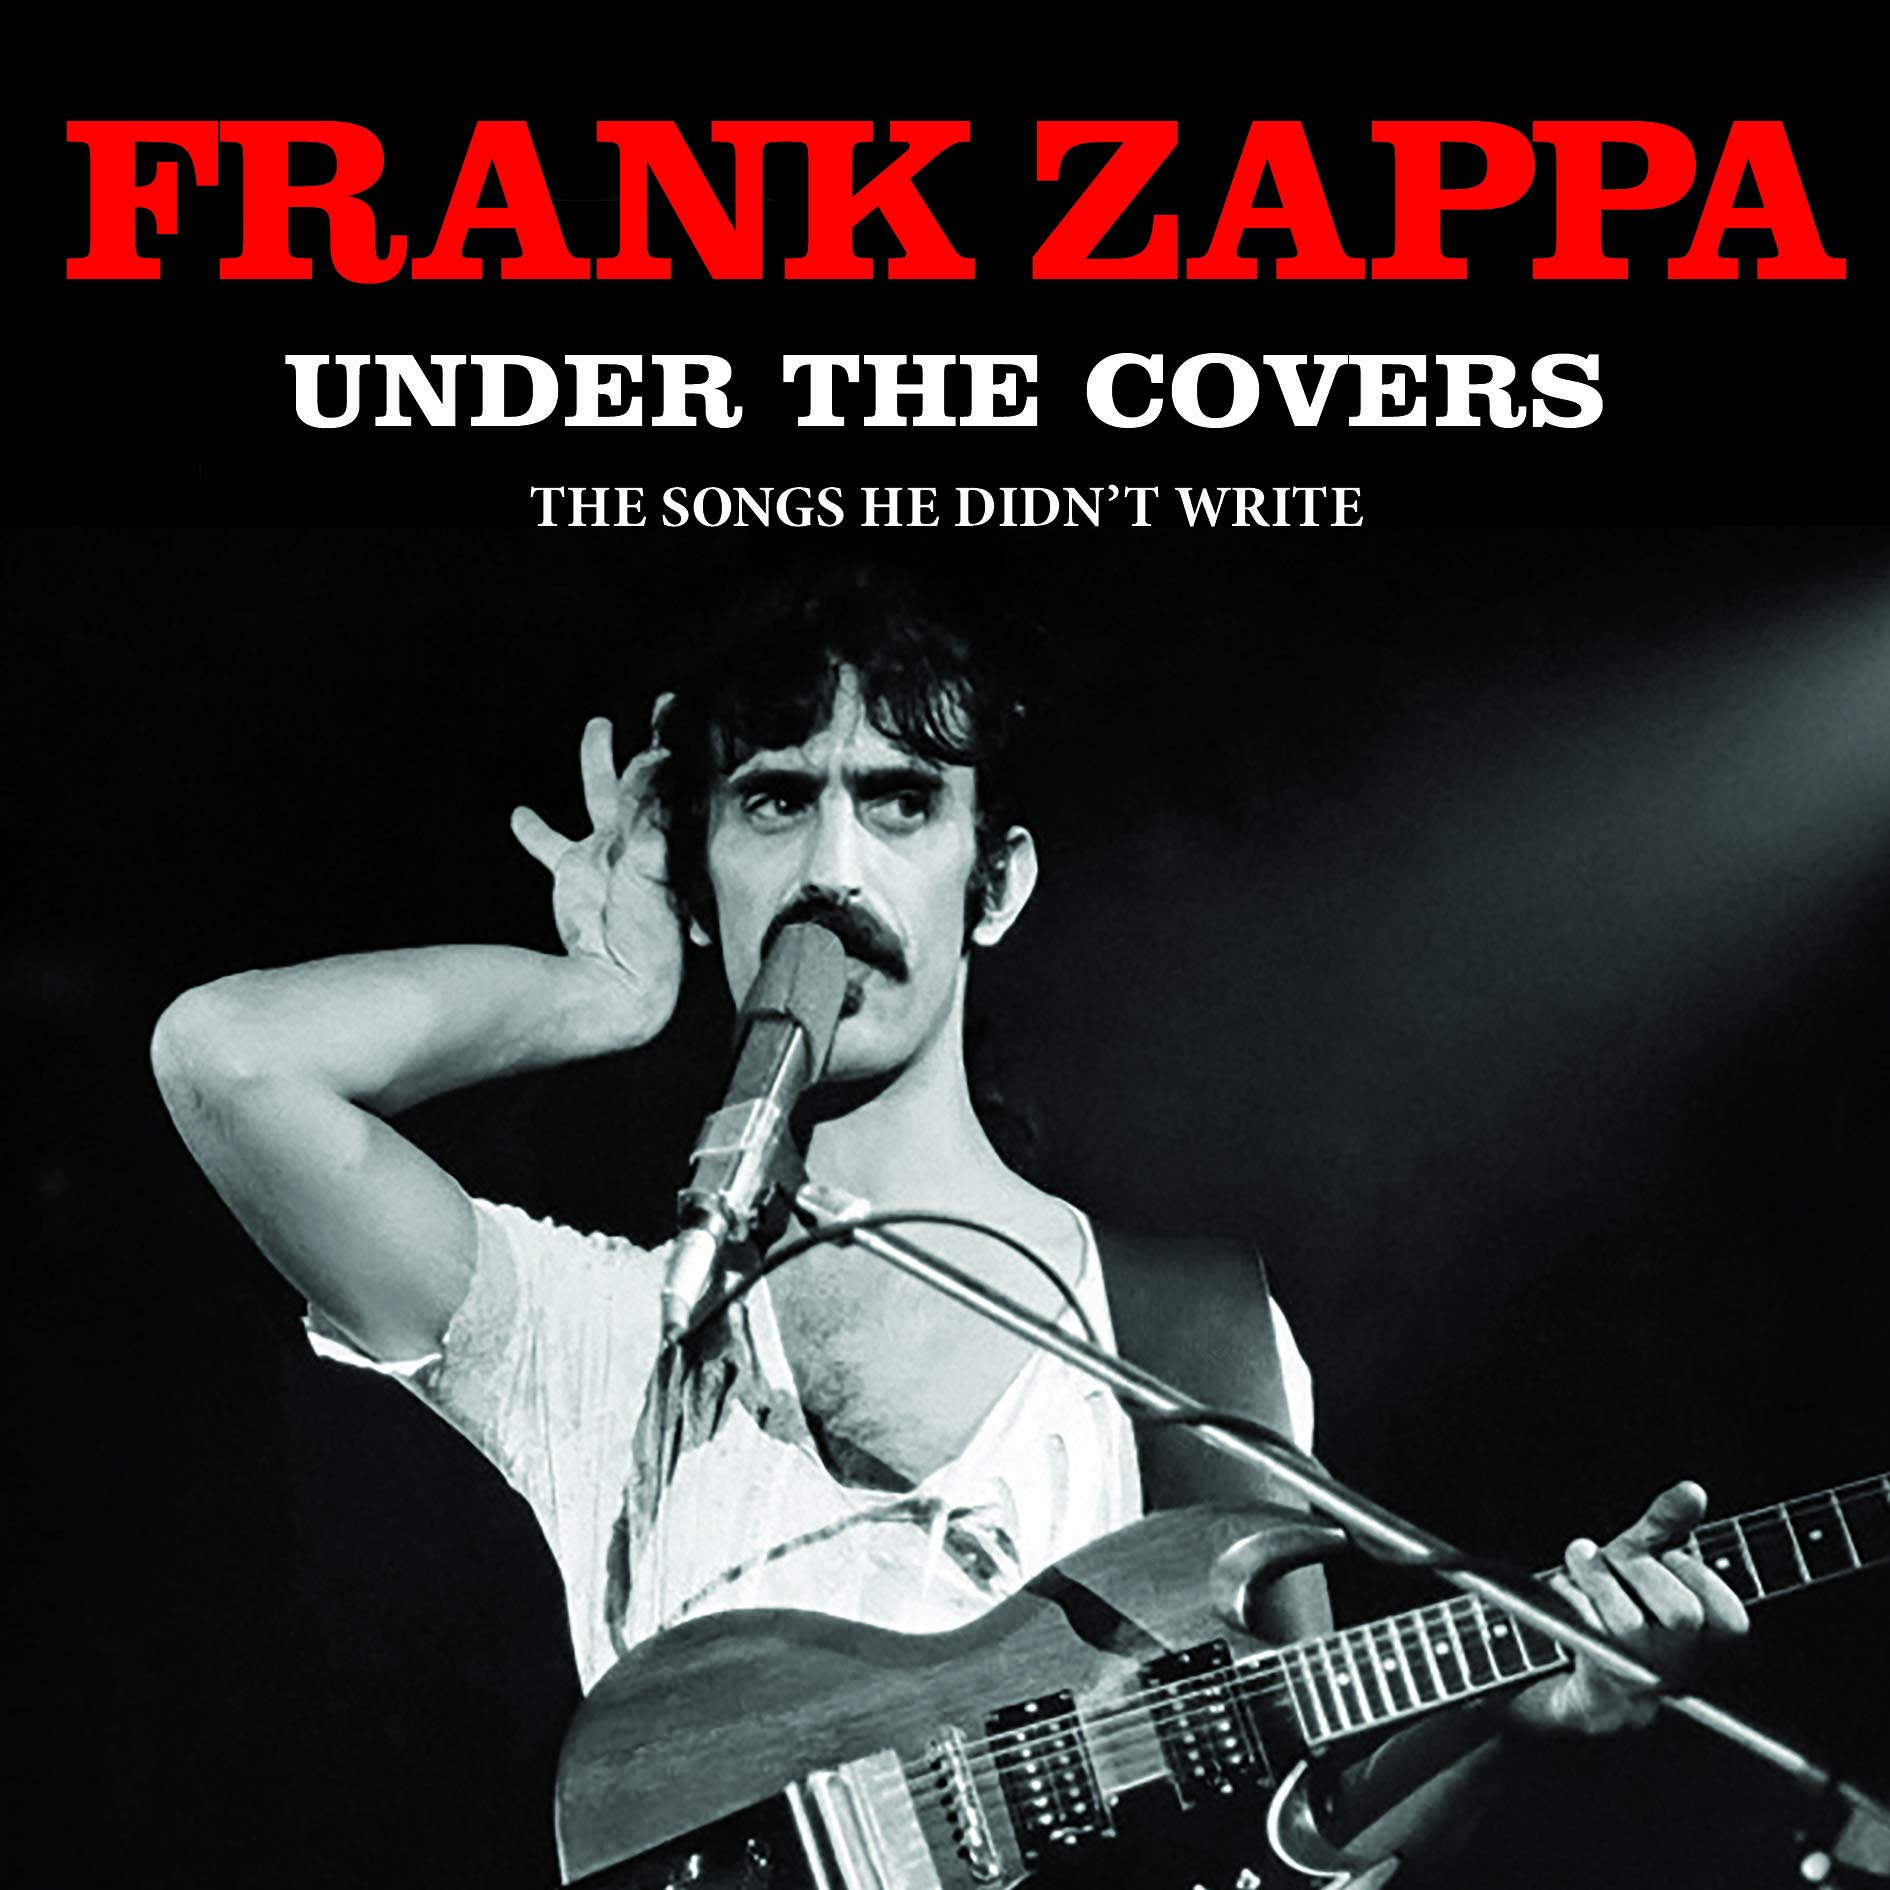 Frank Zappa - Under The Covers: The Songs He Didn't Write (2019) [FLAC] Download